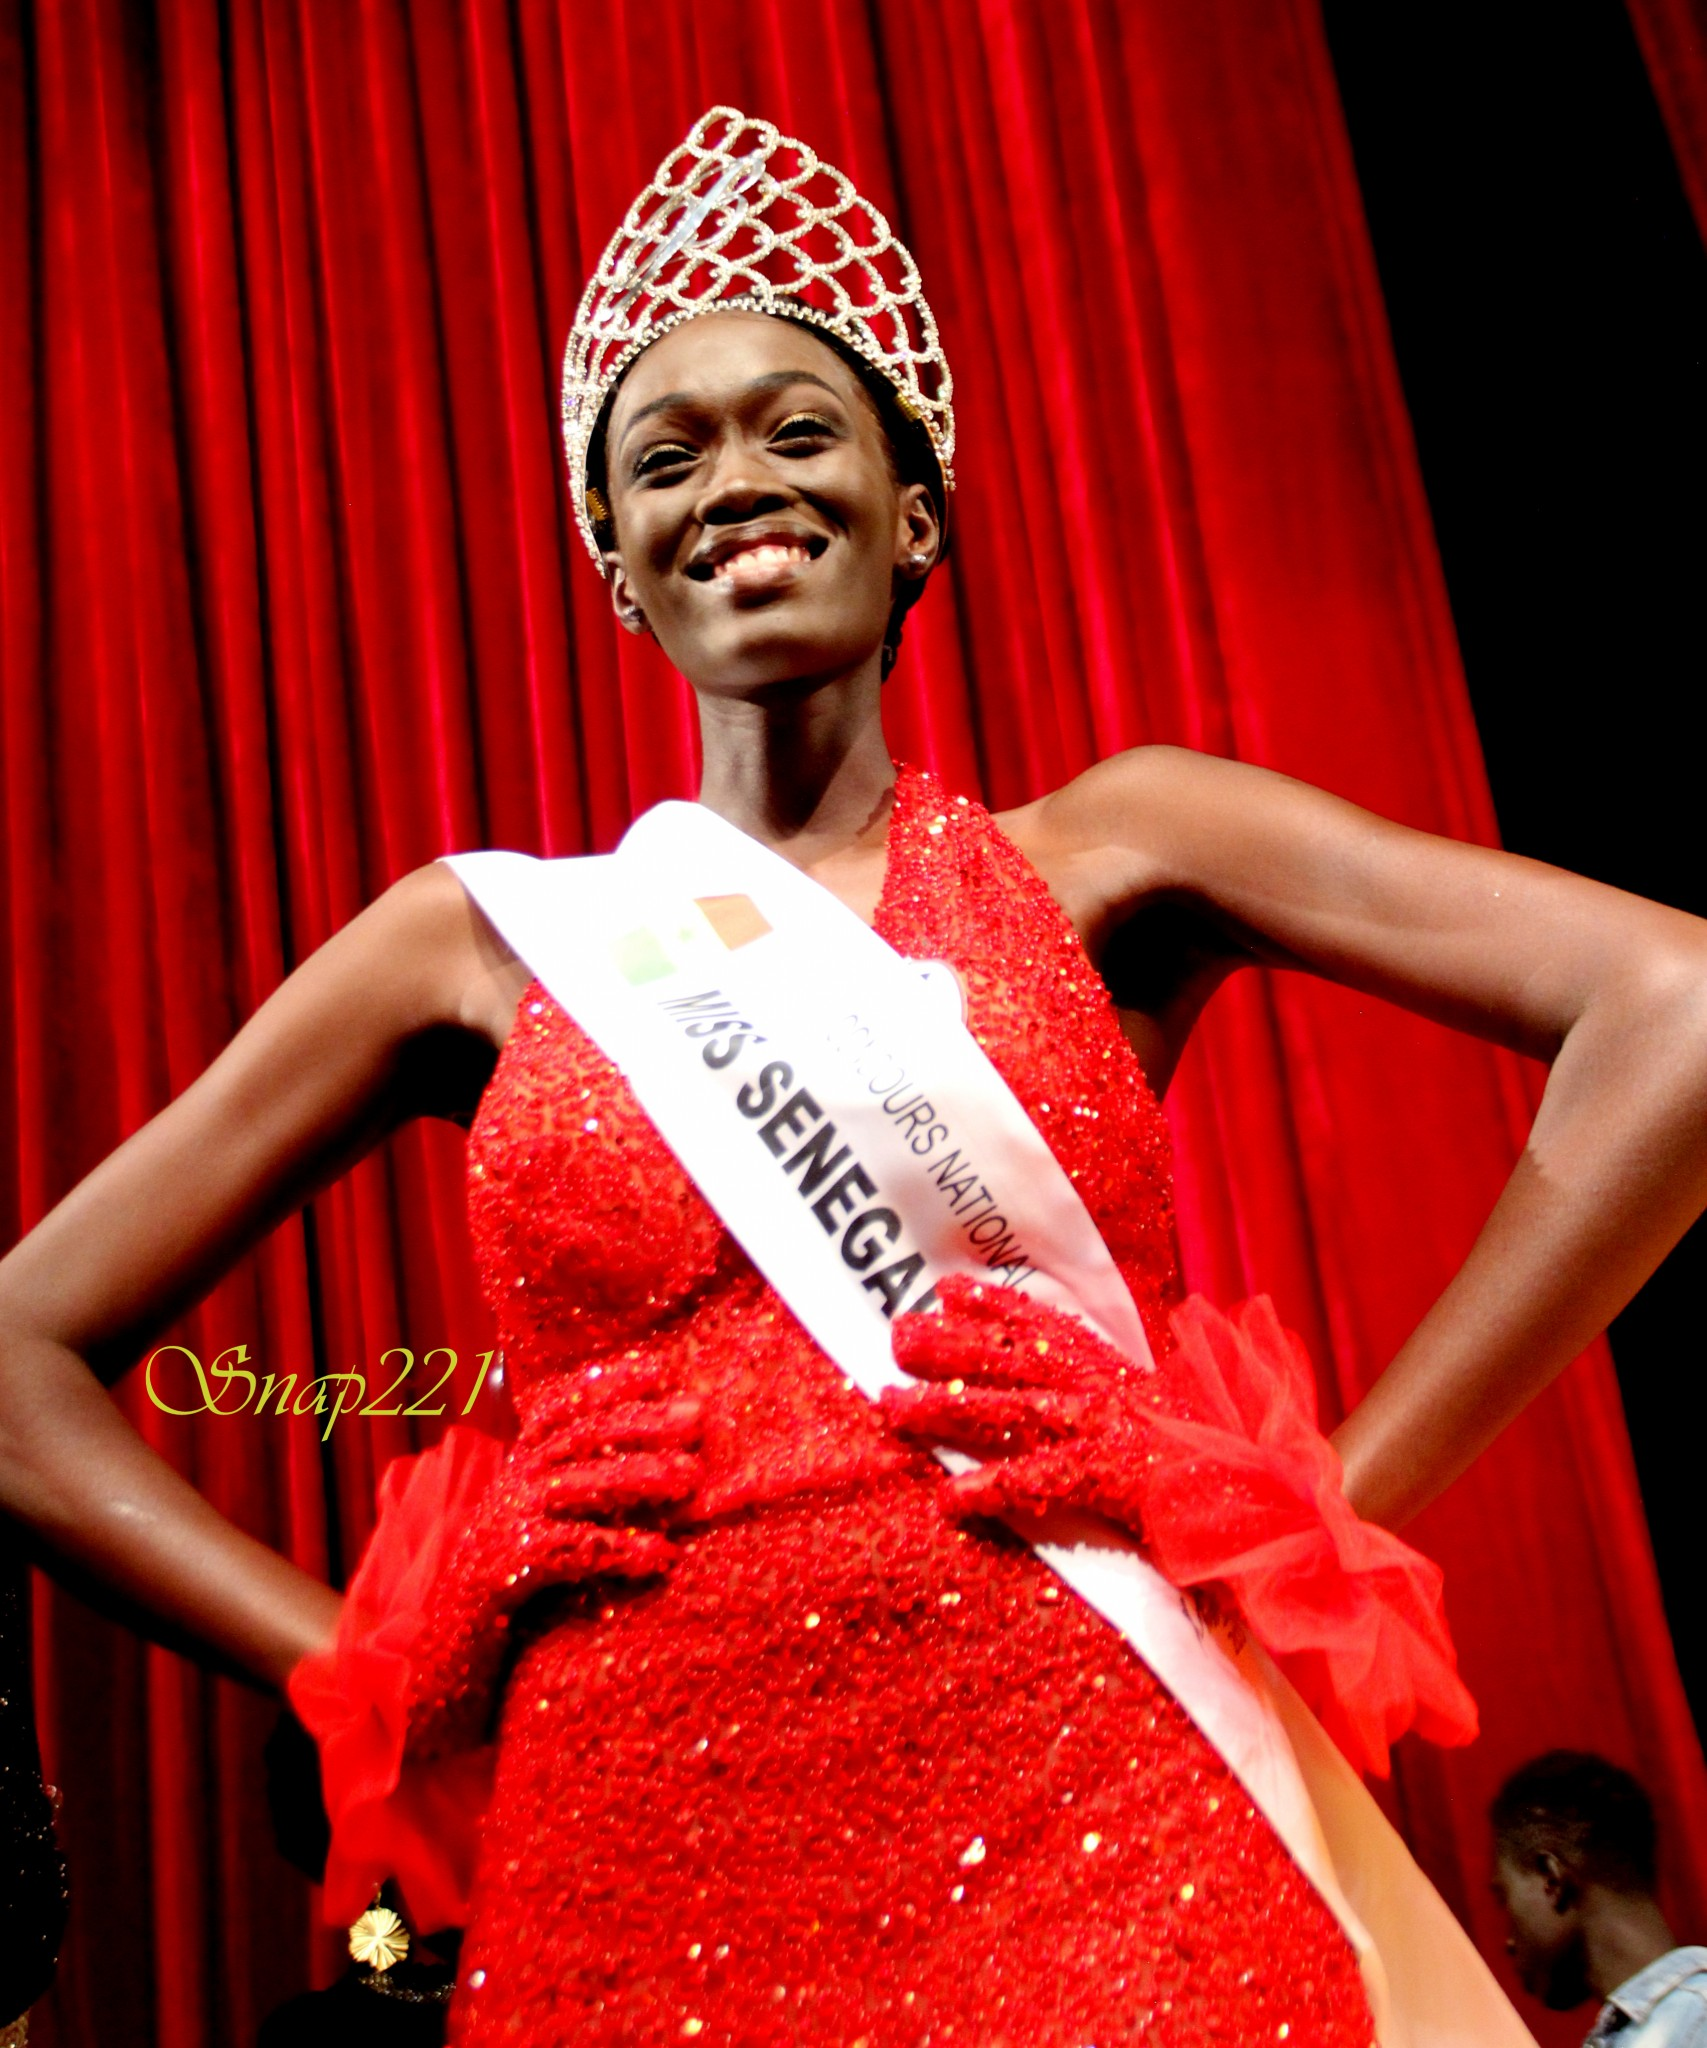 Miss Sénégal 2020 : Ndèye Fatima Dione, reine de beauté nationale